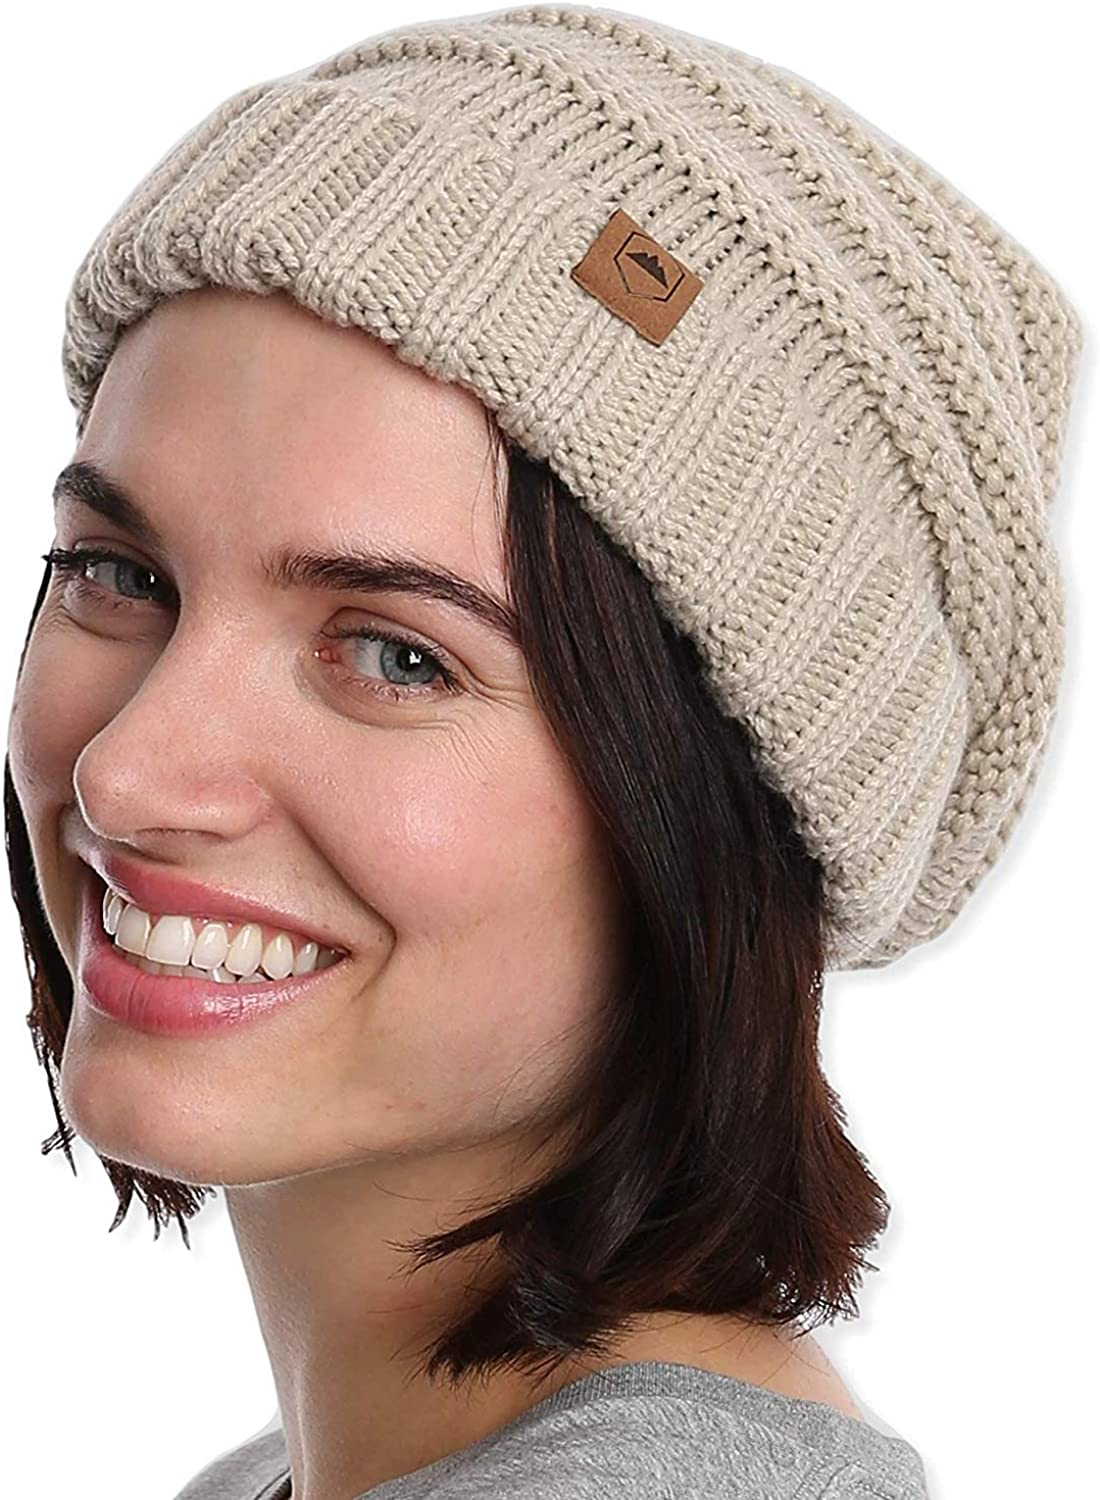 Warm /& Cute Winter Hats for Cold Weather Slouchy Cable Knit Beanie for Women